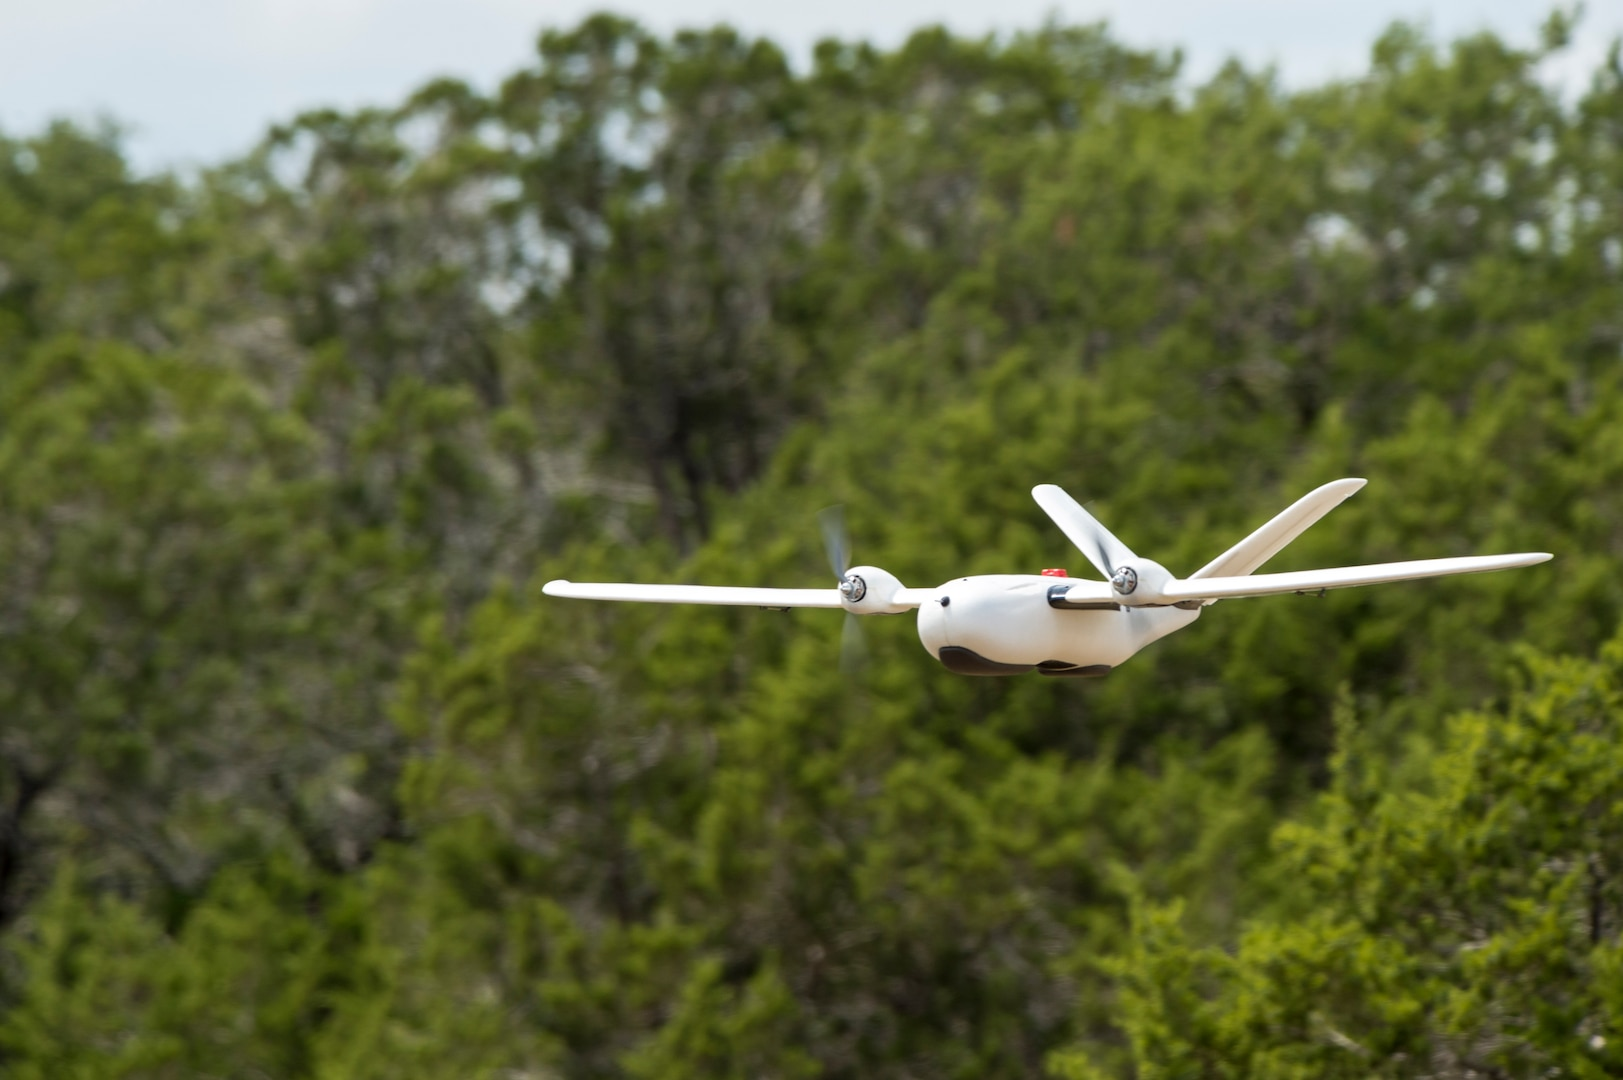 An unmanned aerial system flies over Joint Base San Antonio-Camp Bullis during a field test Sept. 4. The UAS was equipped with Light Detection and Ranging, multi-spectral sensors and machine-learning algorithms to map, survey and inventory habitat for the golden-cheeked warbler. The field test will help the Air Force determine if UAS technology can characterize habitat better, faster and cheaper than current methods.